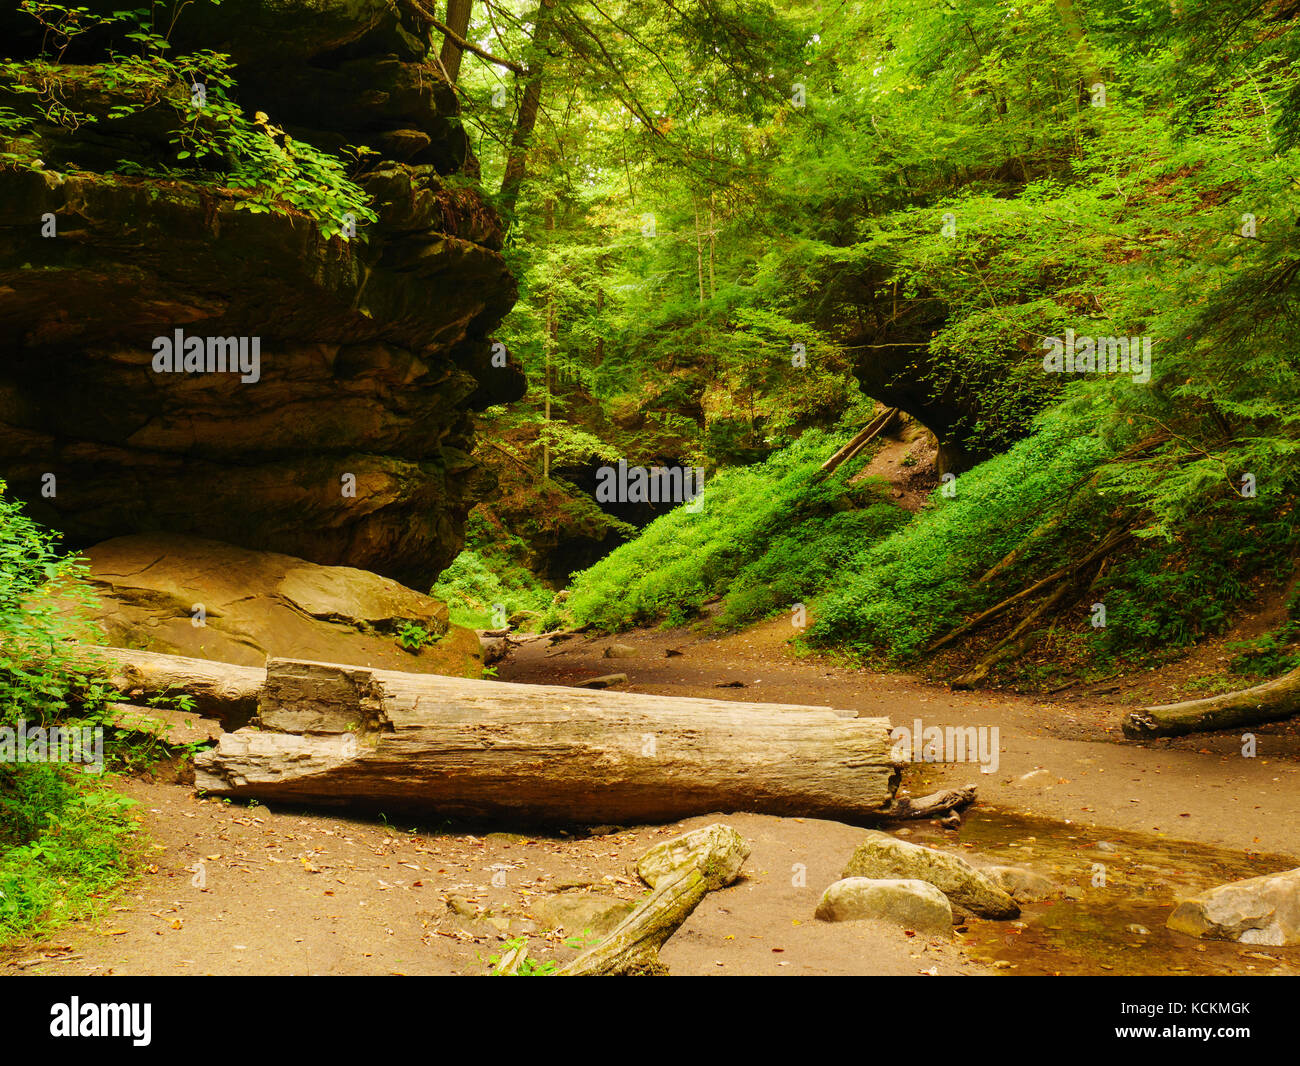 rocky-hollow-turkey-run-state-park-india